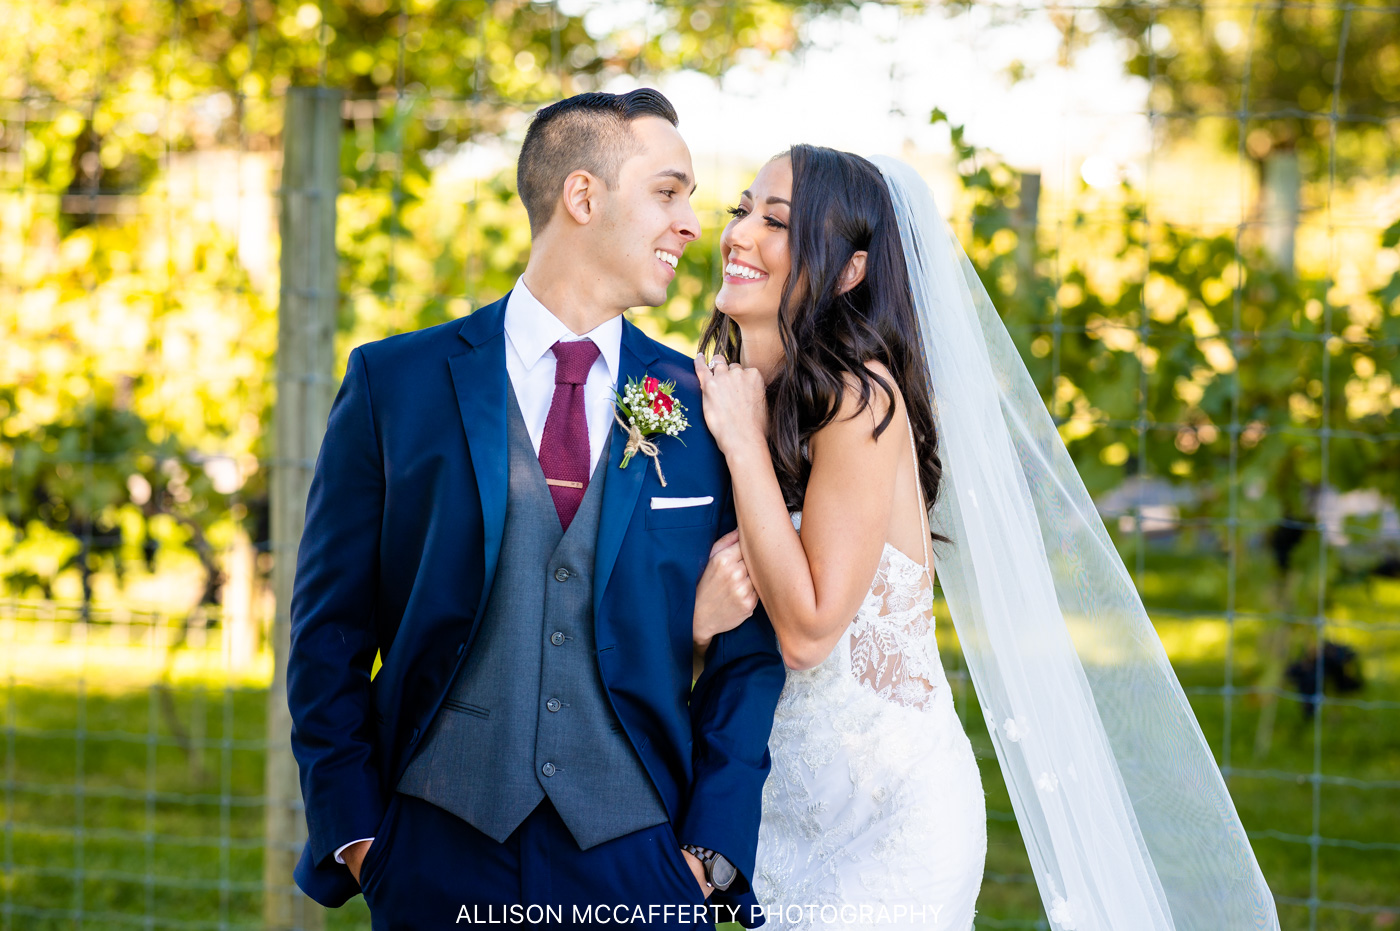 The Pavilion at Valenzano Winery Wedding Review